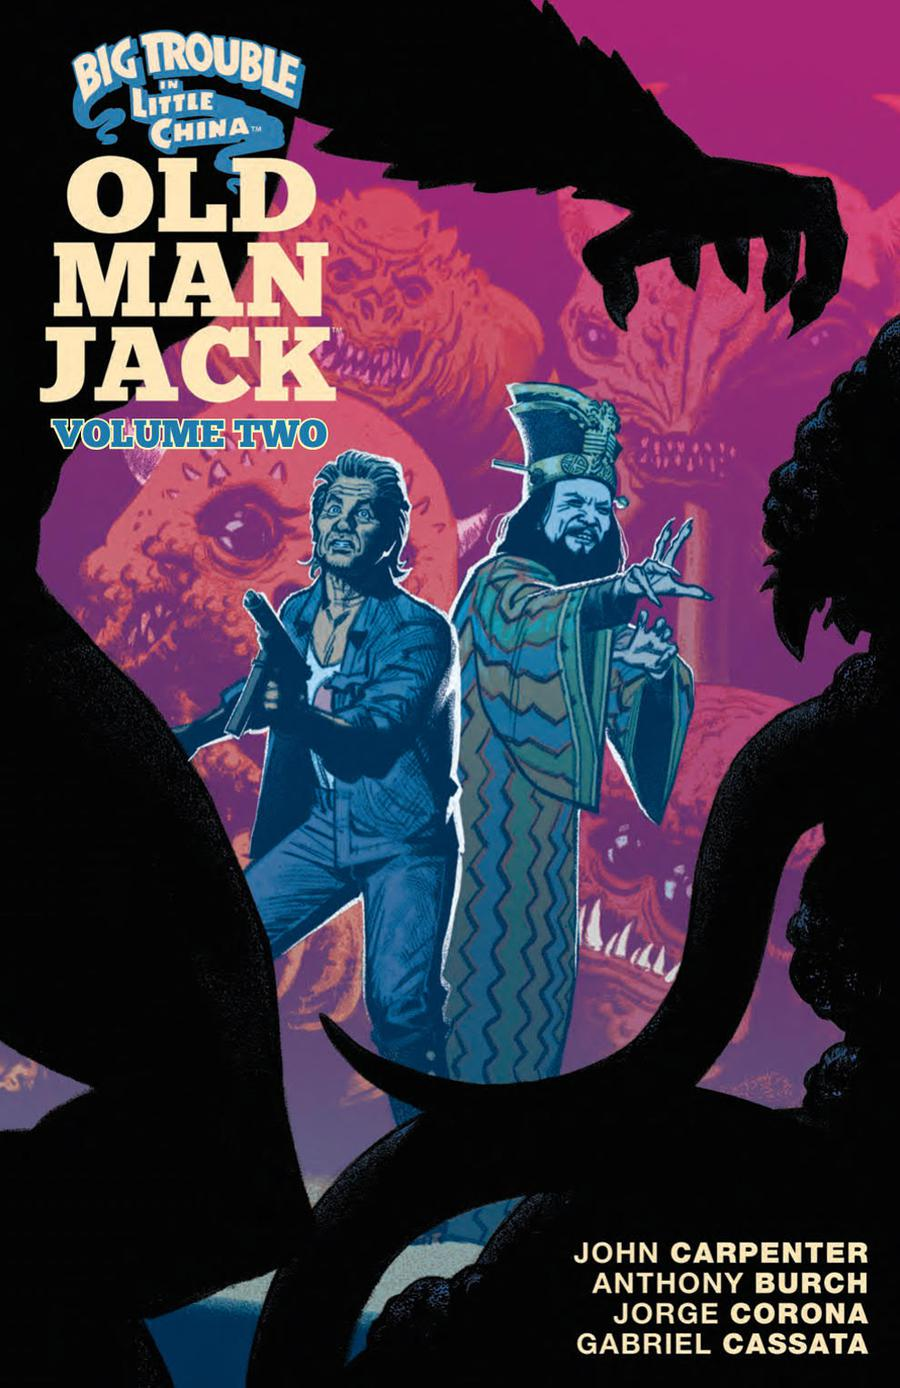 Big Trouble In Little China Old Man Jack Vol 2 TP